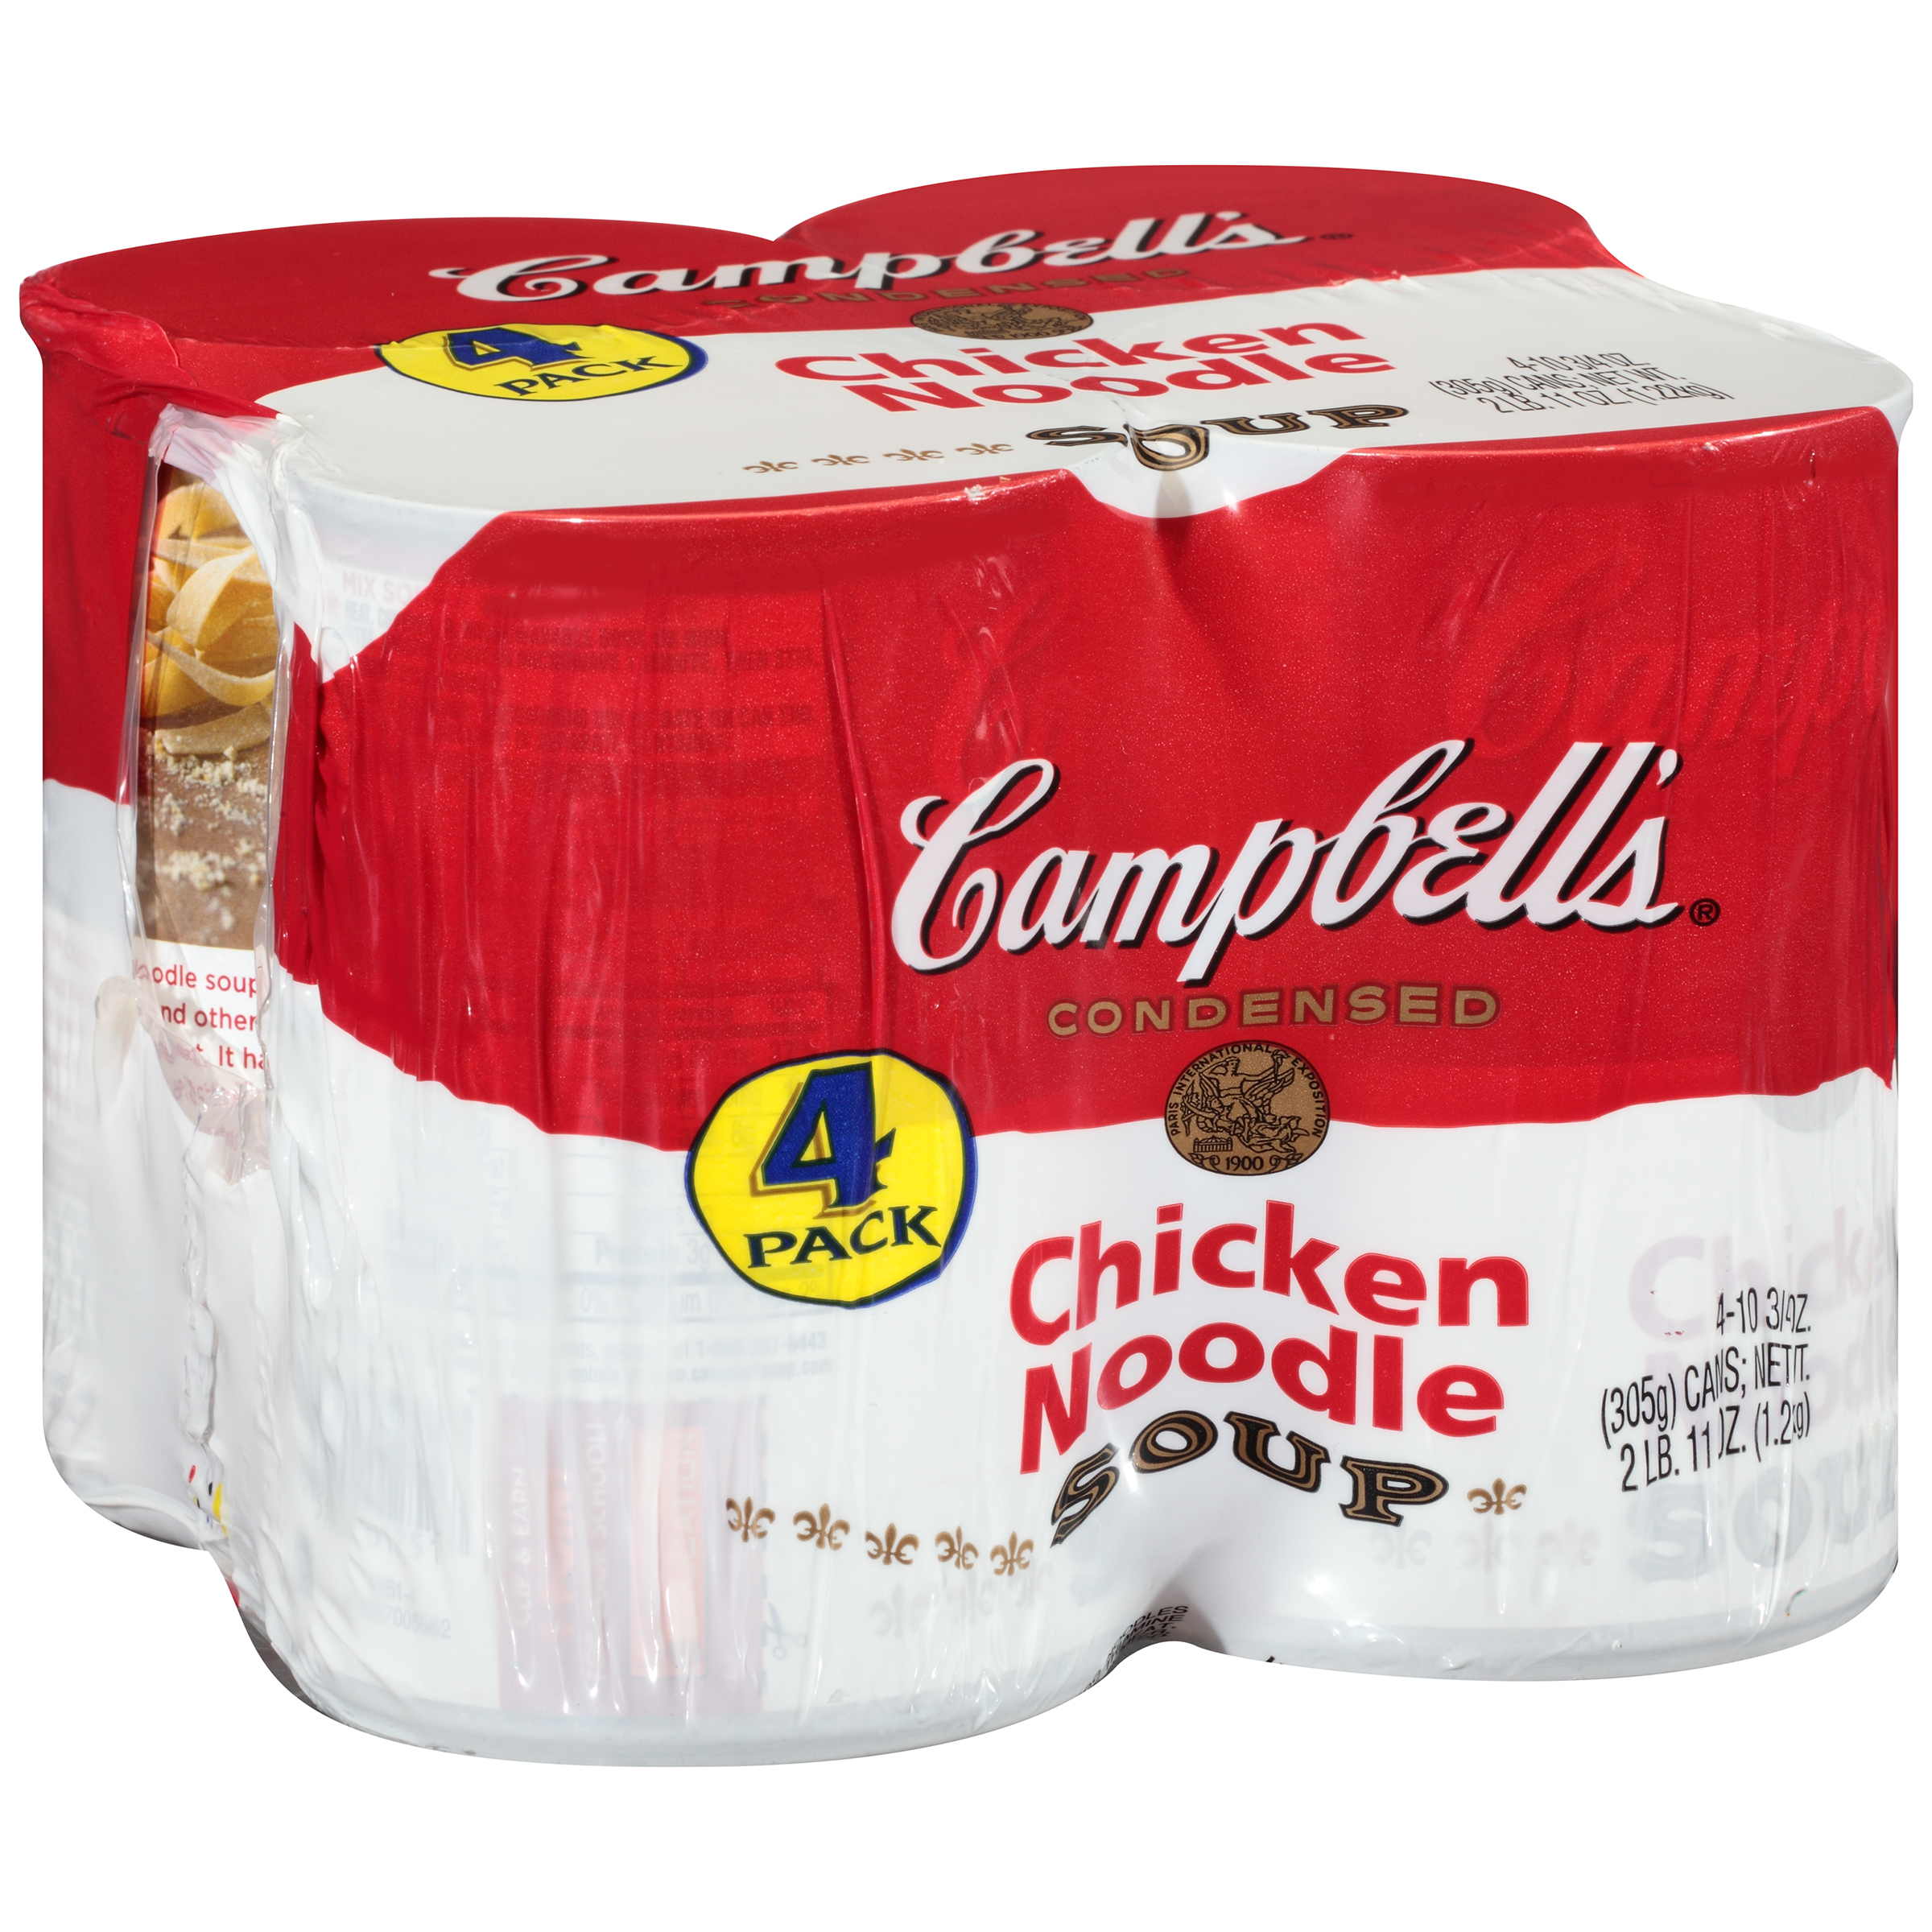 Campbell's Chicken Noodle Soup 10.75oz 4 pack